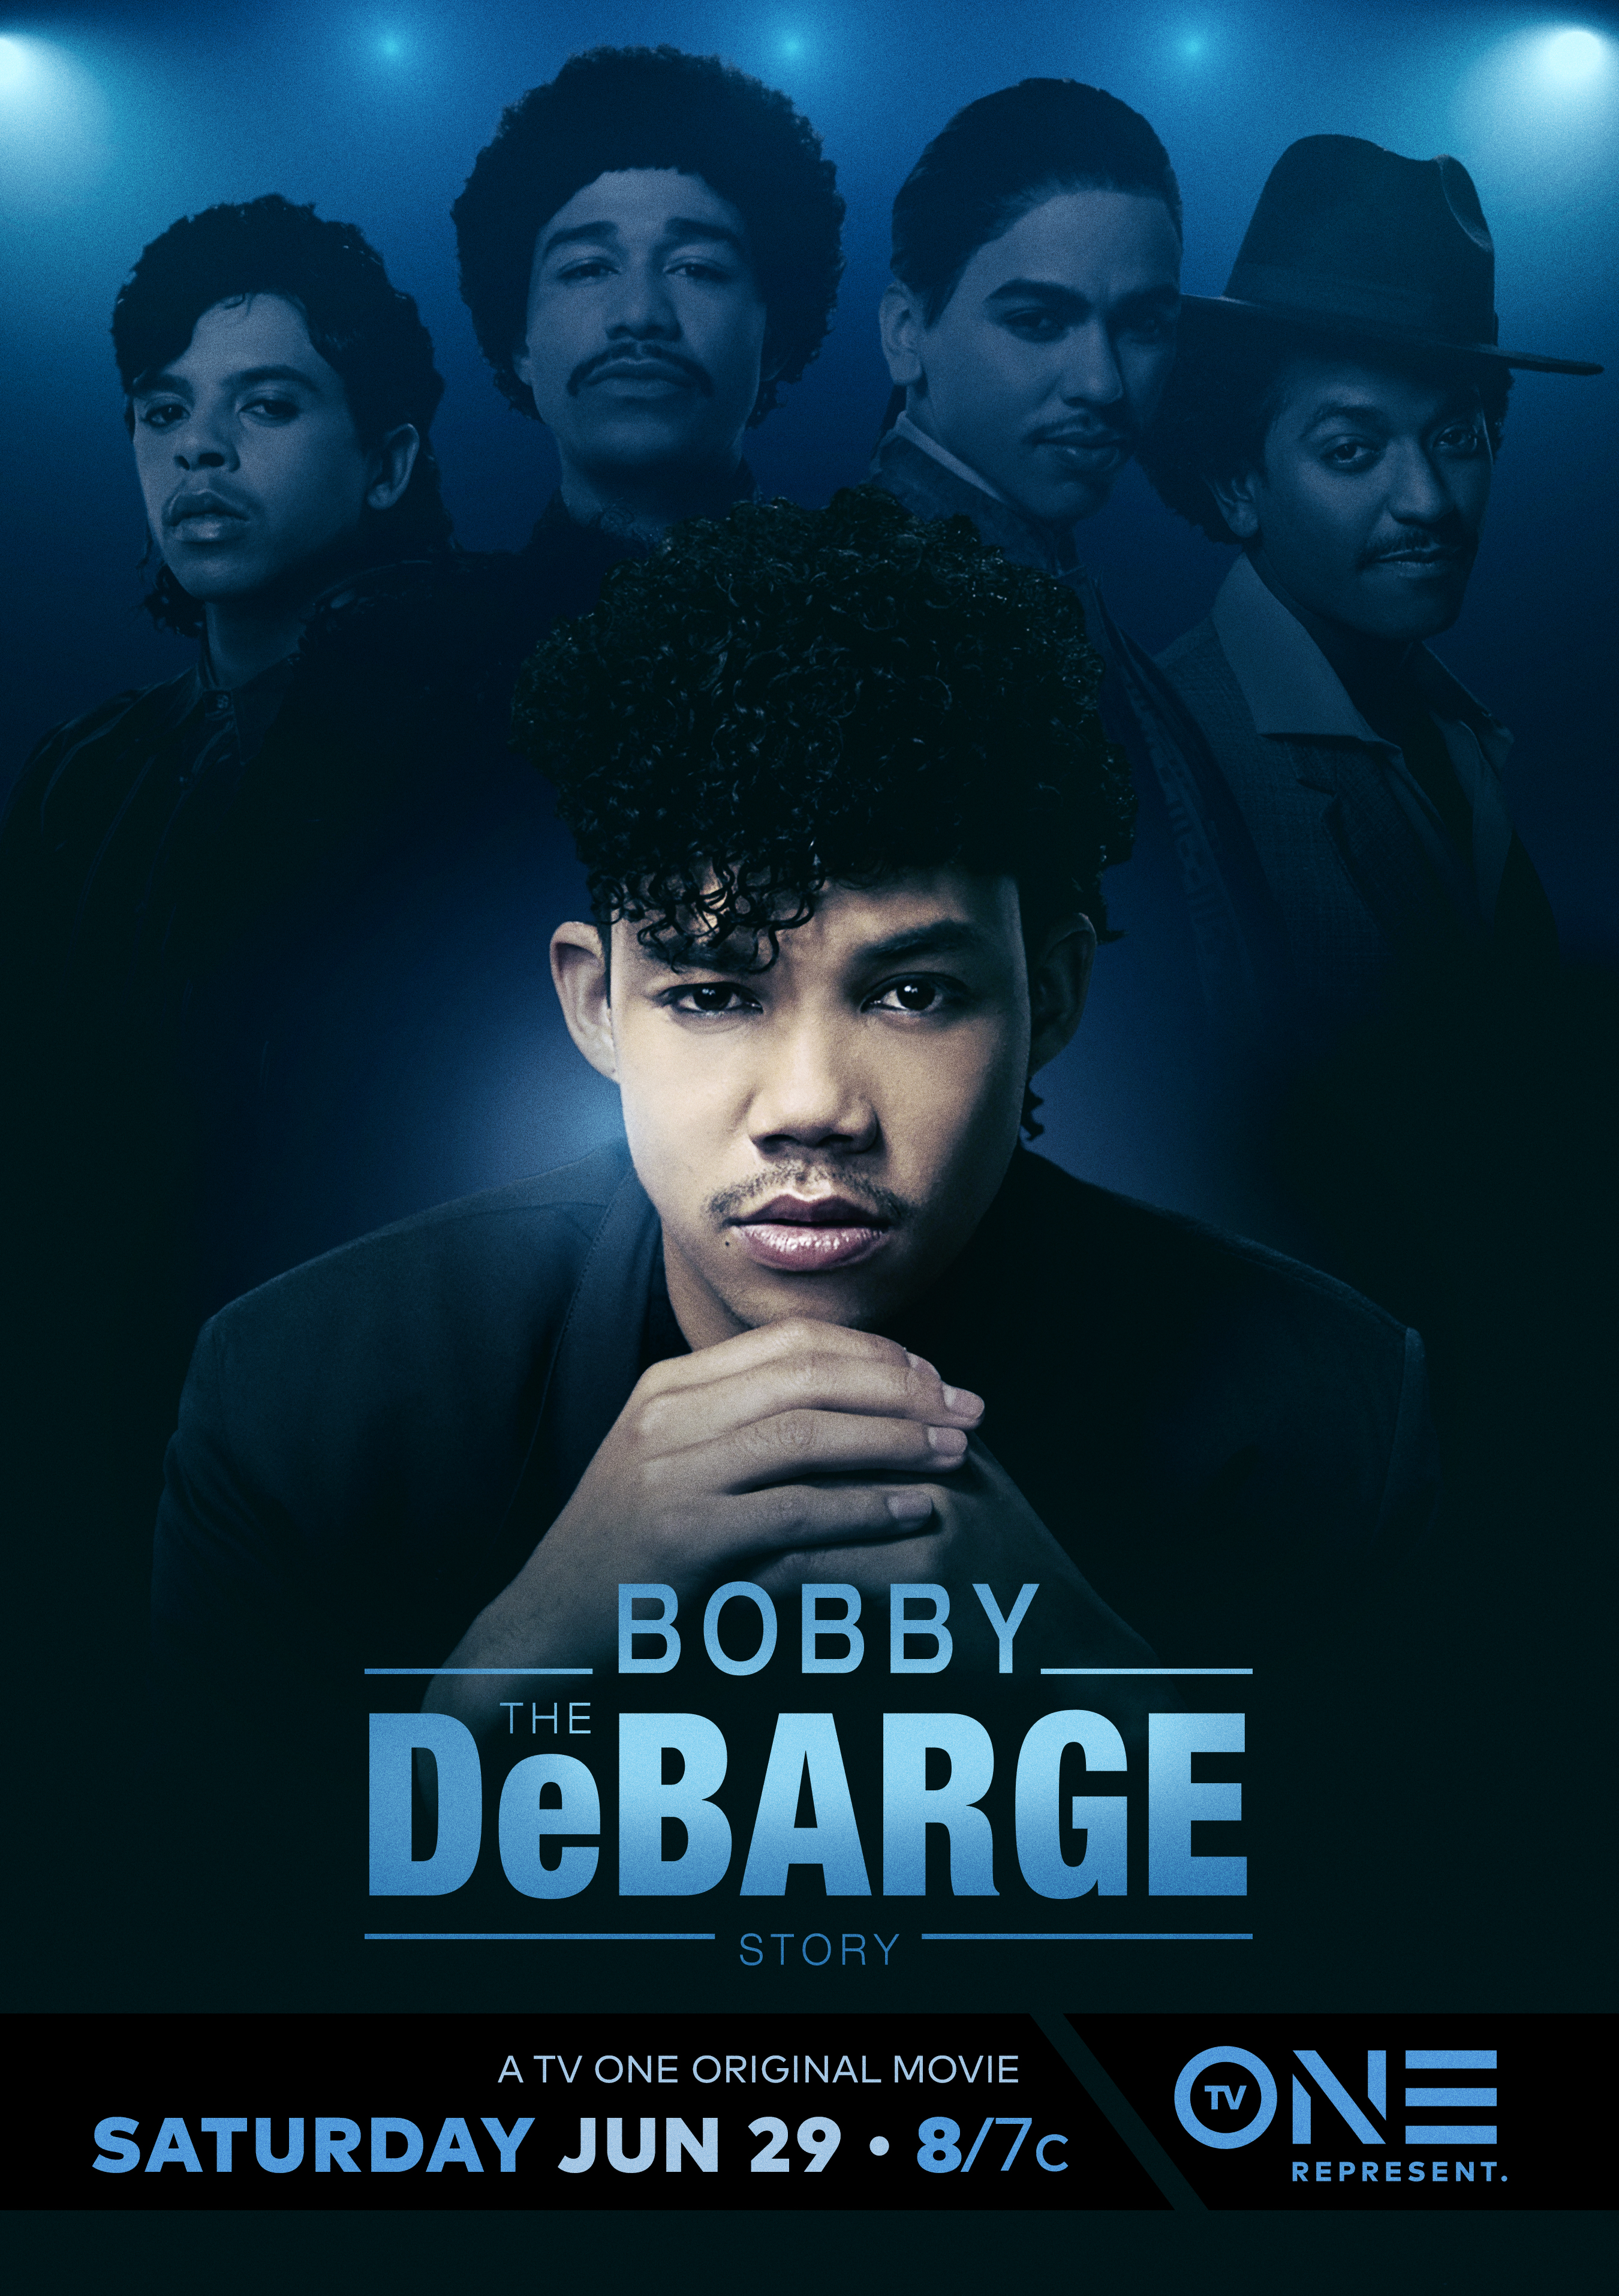 The Bobby DeBarge Story Coming To Tv One